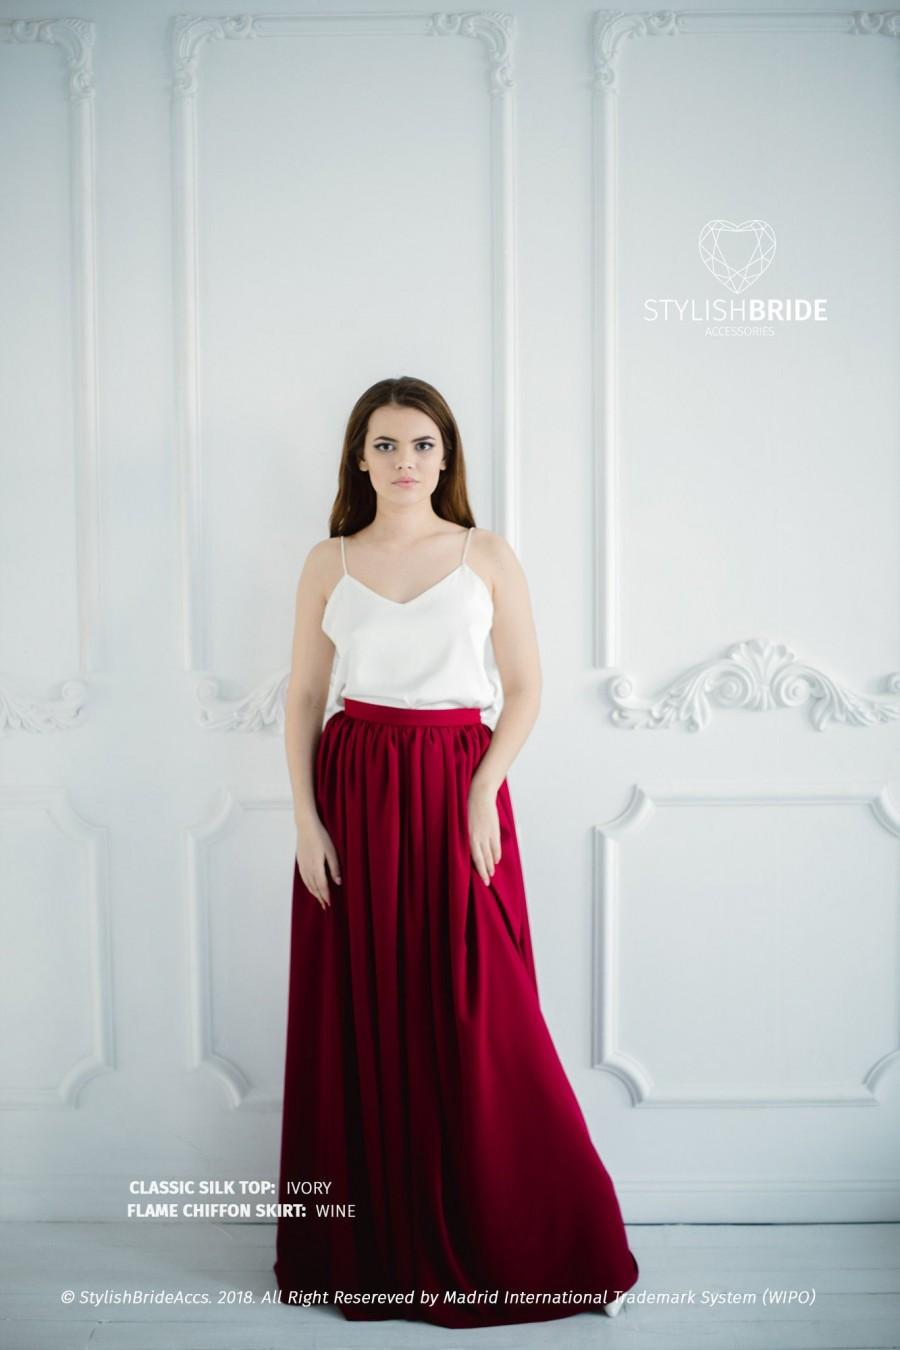 Hochzeit - Wine Chiffon Bridesmaid Simple Flame Skirt and Ivory Simple Top, Bridesmaids Chiffon Skirts, Wine Chiffon Skirt Plus Size